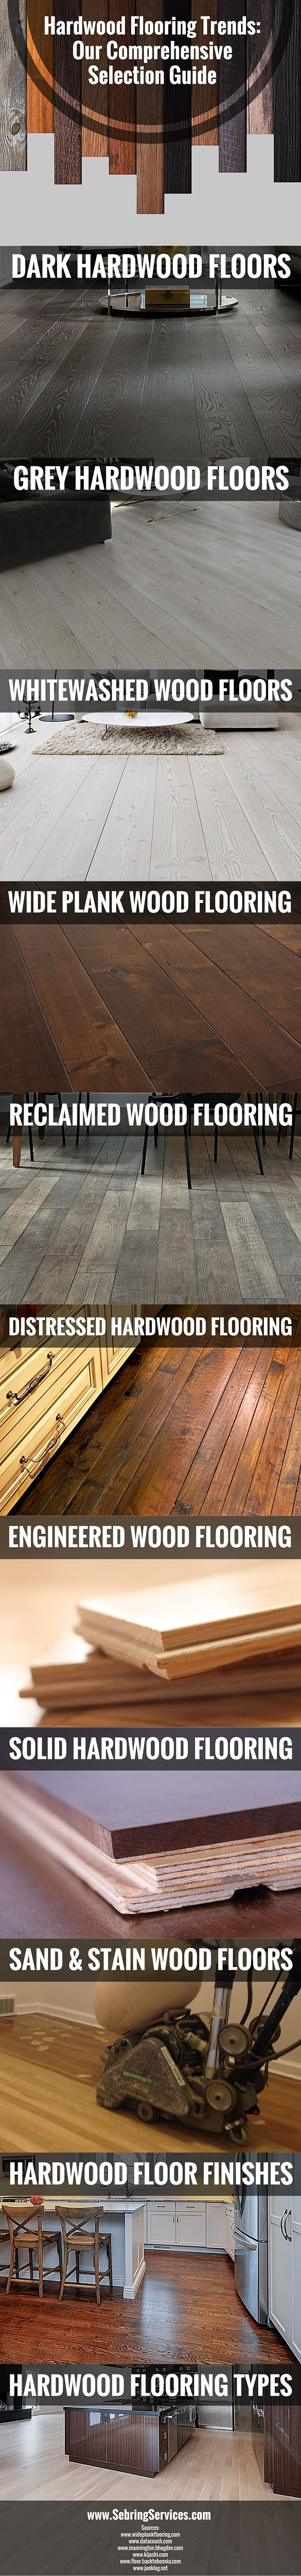 Flooring eclectic hardwood flooring boston by paris ceramics - Hardwood Flooring Trends Our Comprehensive Selection Guide